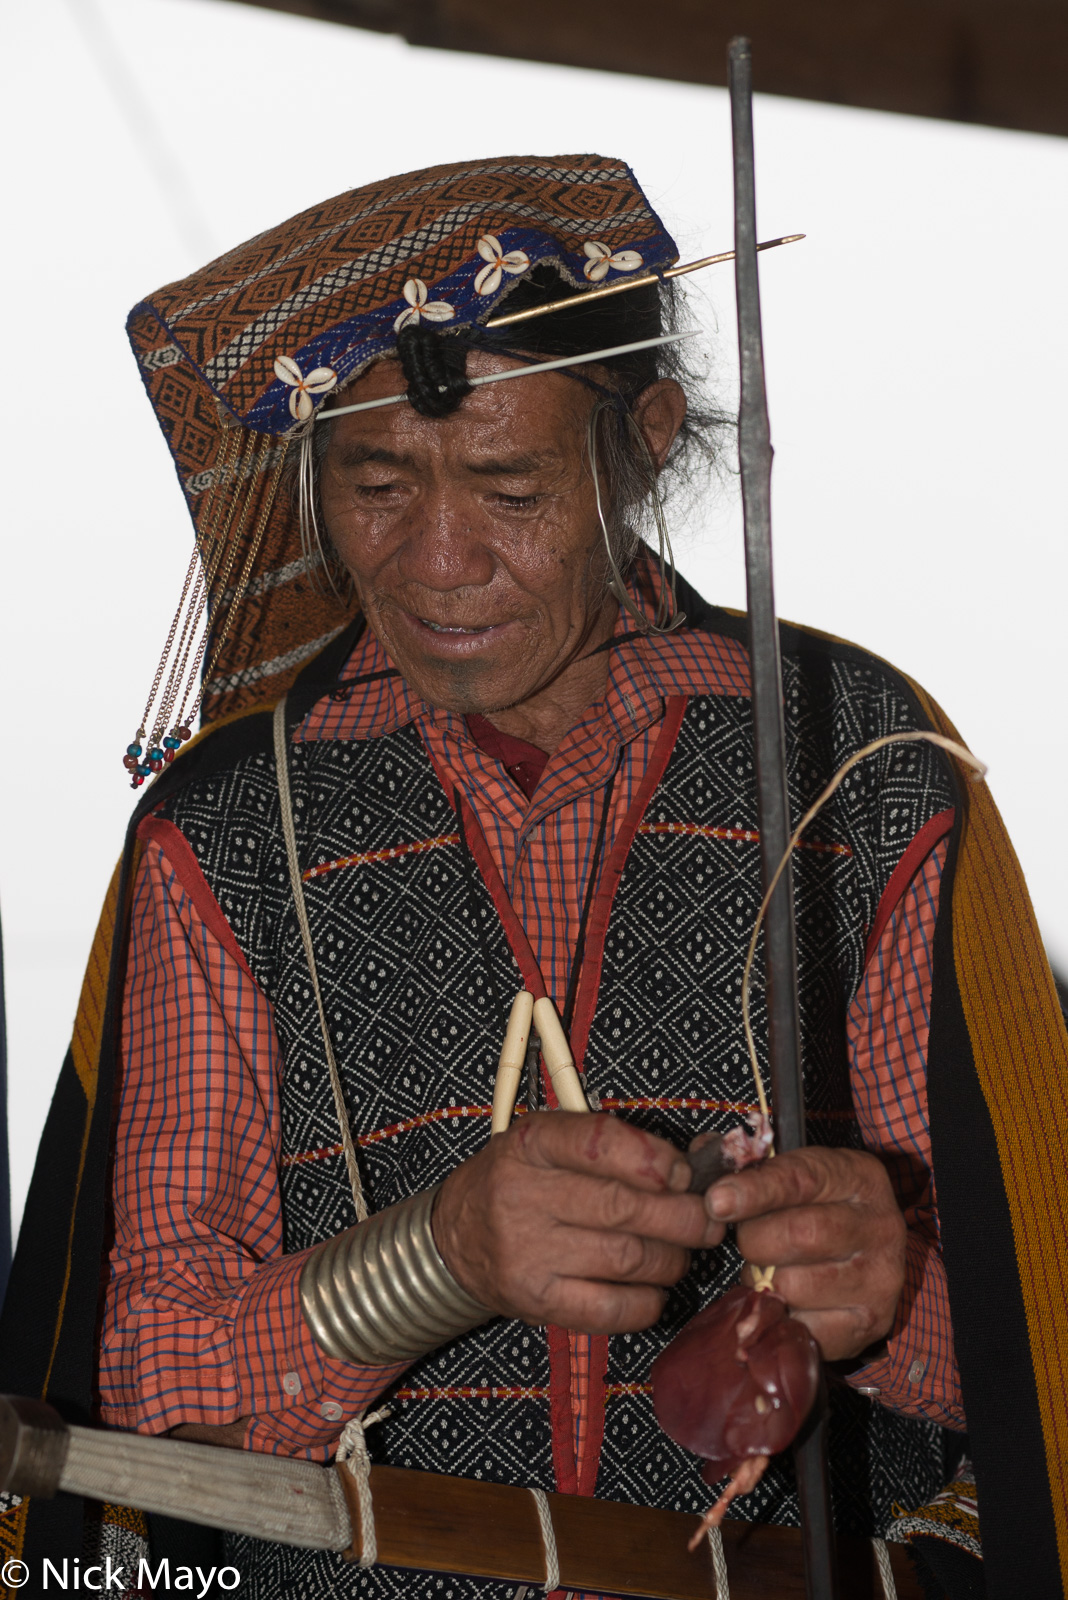 Apatani, Arunachal Pradesh, Festival, India, Priest, Religious Ritual, photo